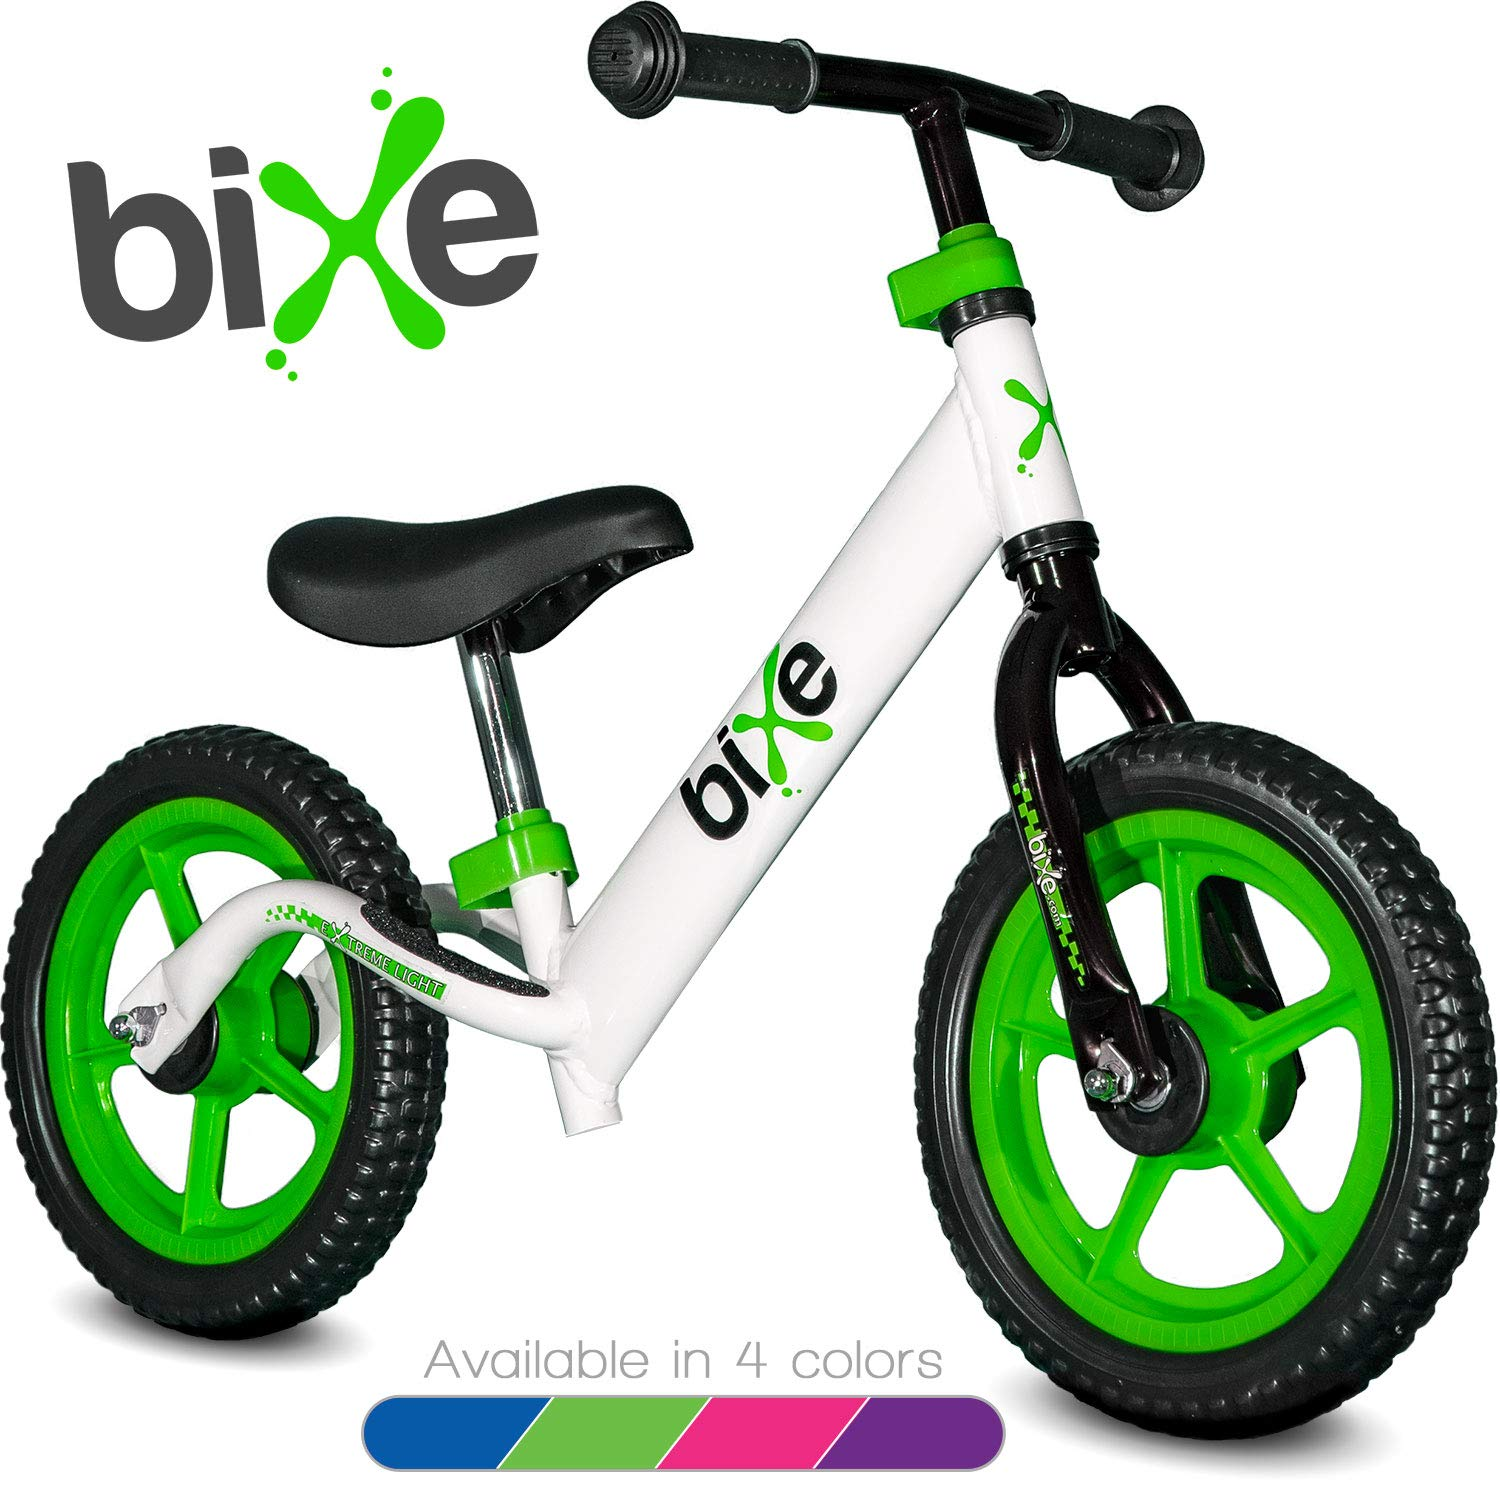 Green (4LBS) Aluminum Balance Bike for Kids and Toddlers - 12'' No Pedal Sport Training Bicycle for Children Ages 3,4,5,6.